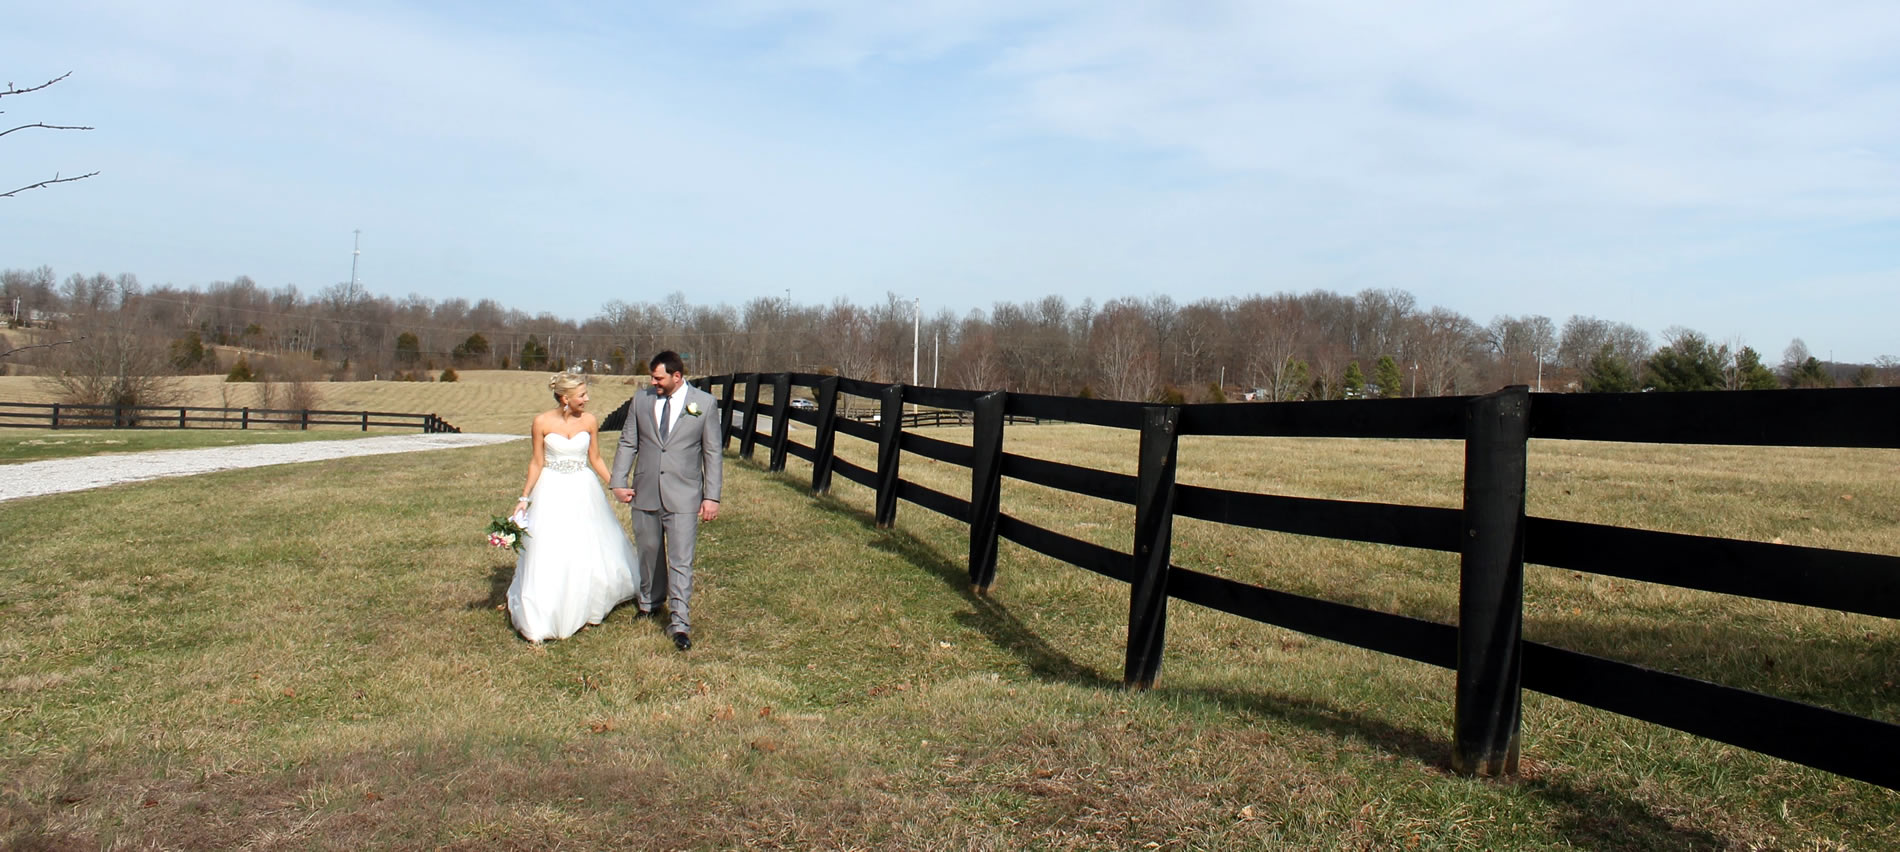 gallery photos for southern grace barn weddings in kentucky